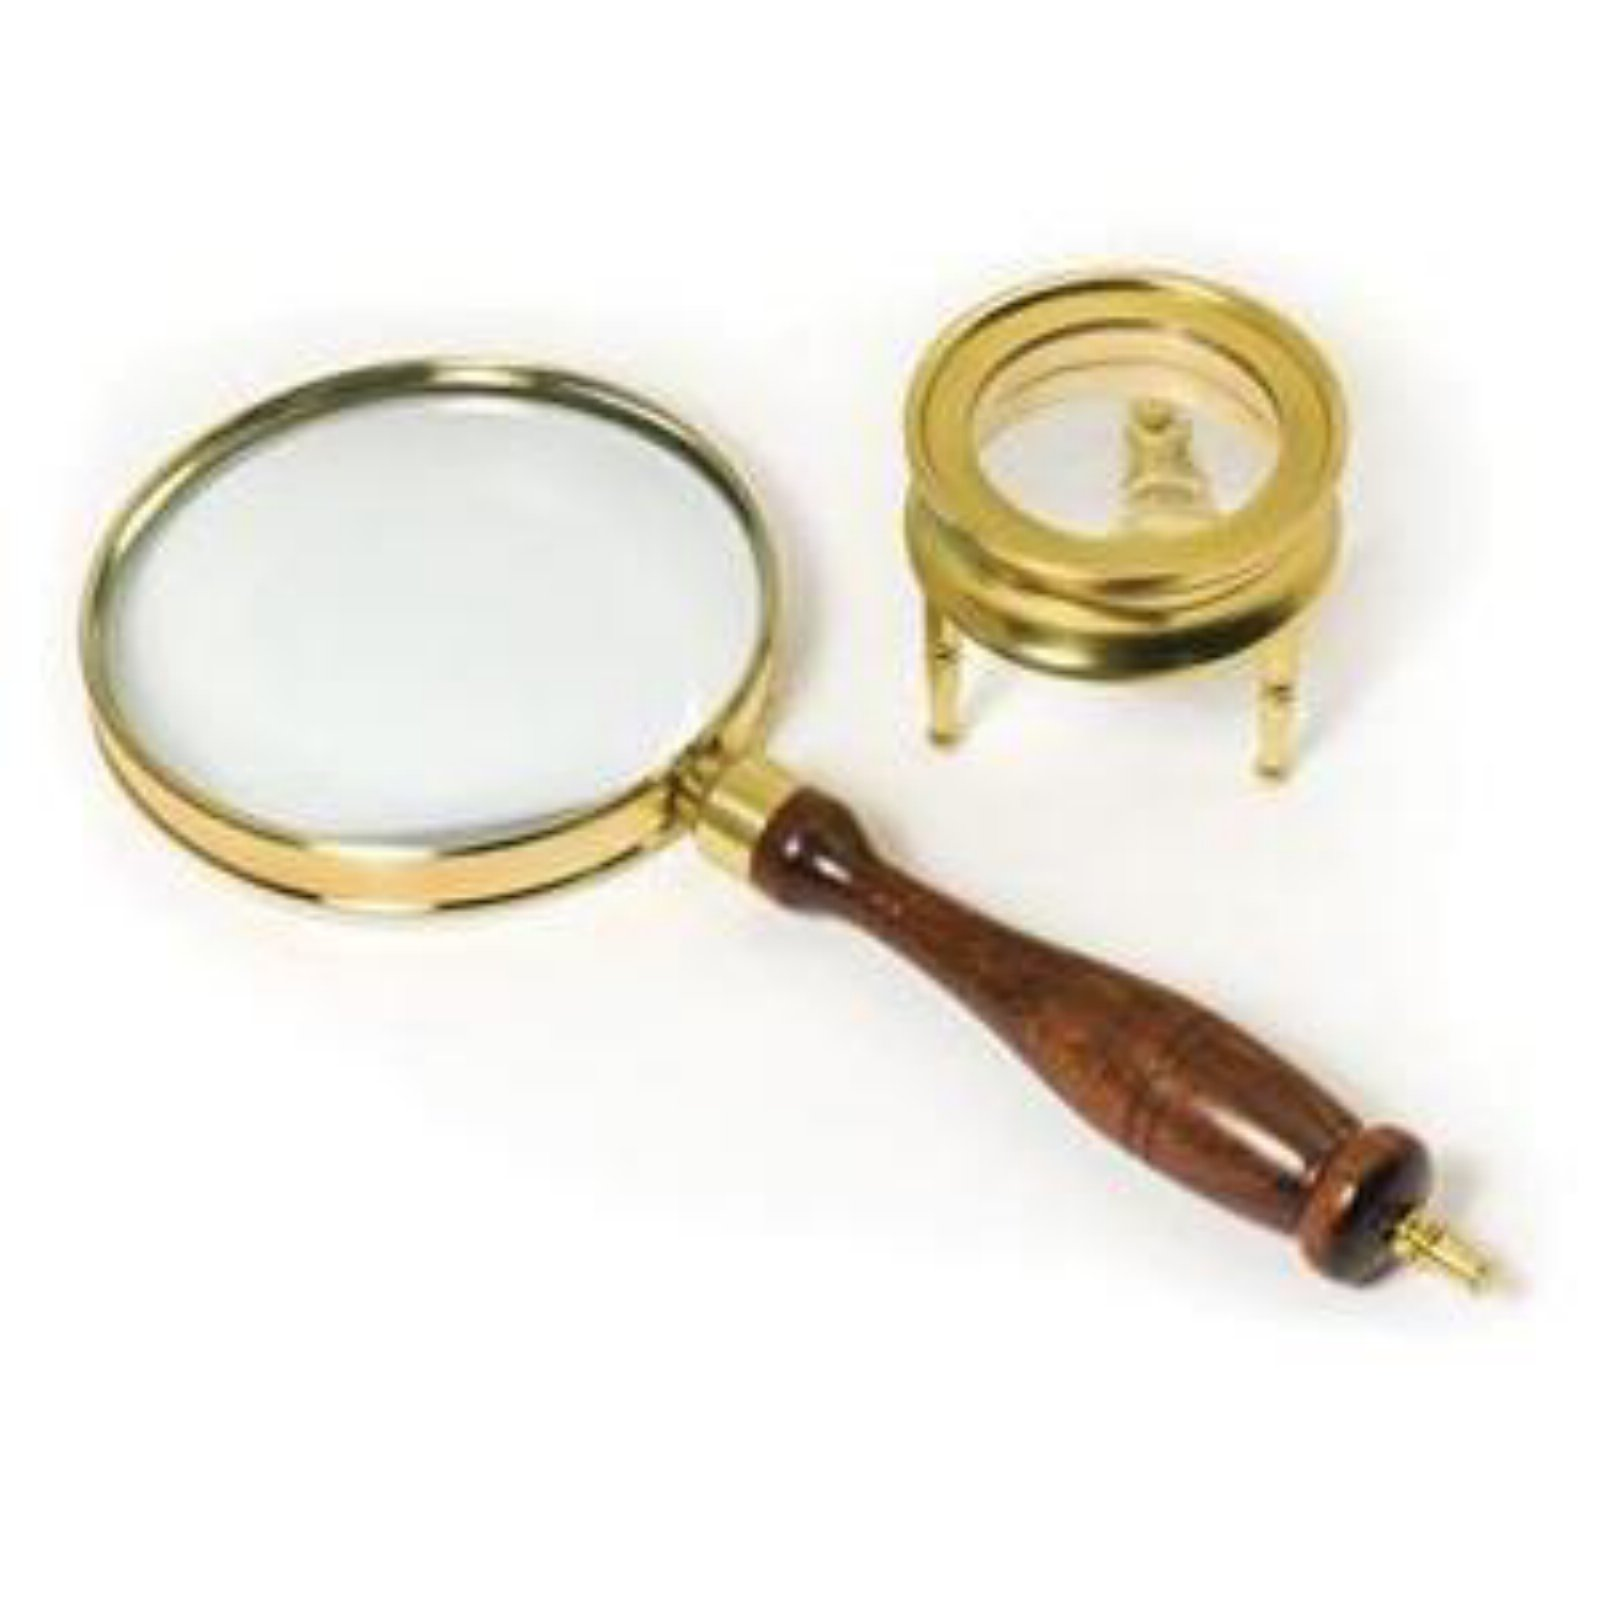 Barska Brass Hand-Held 90mm and 42mm Table Magnifiers